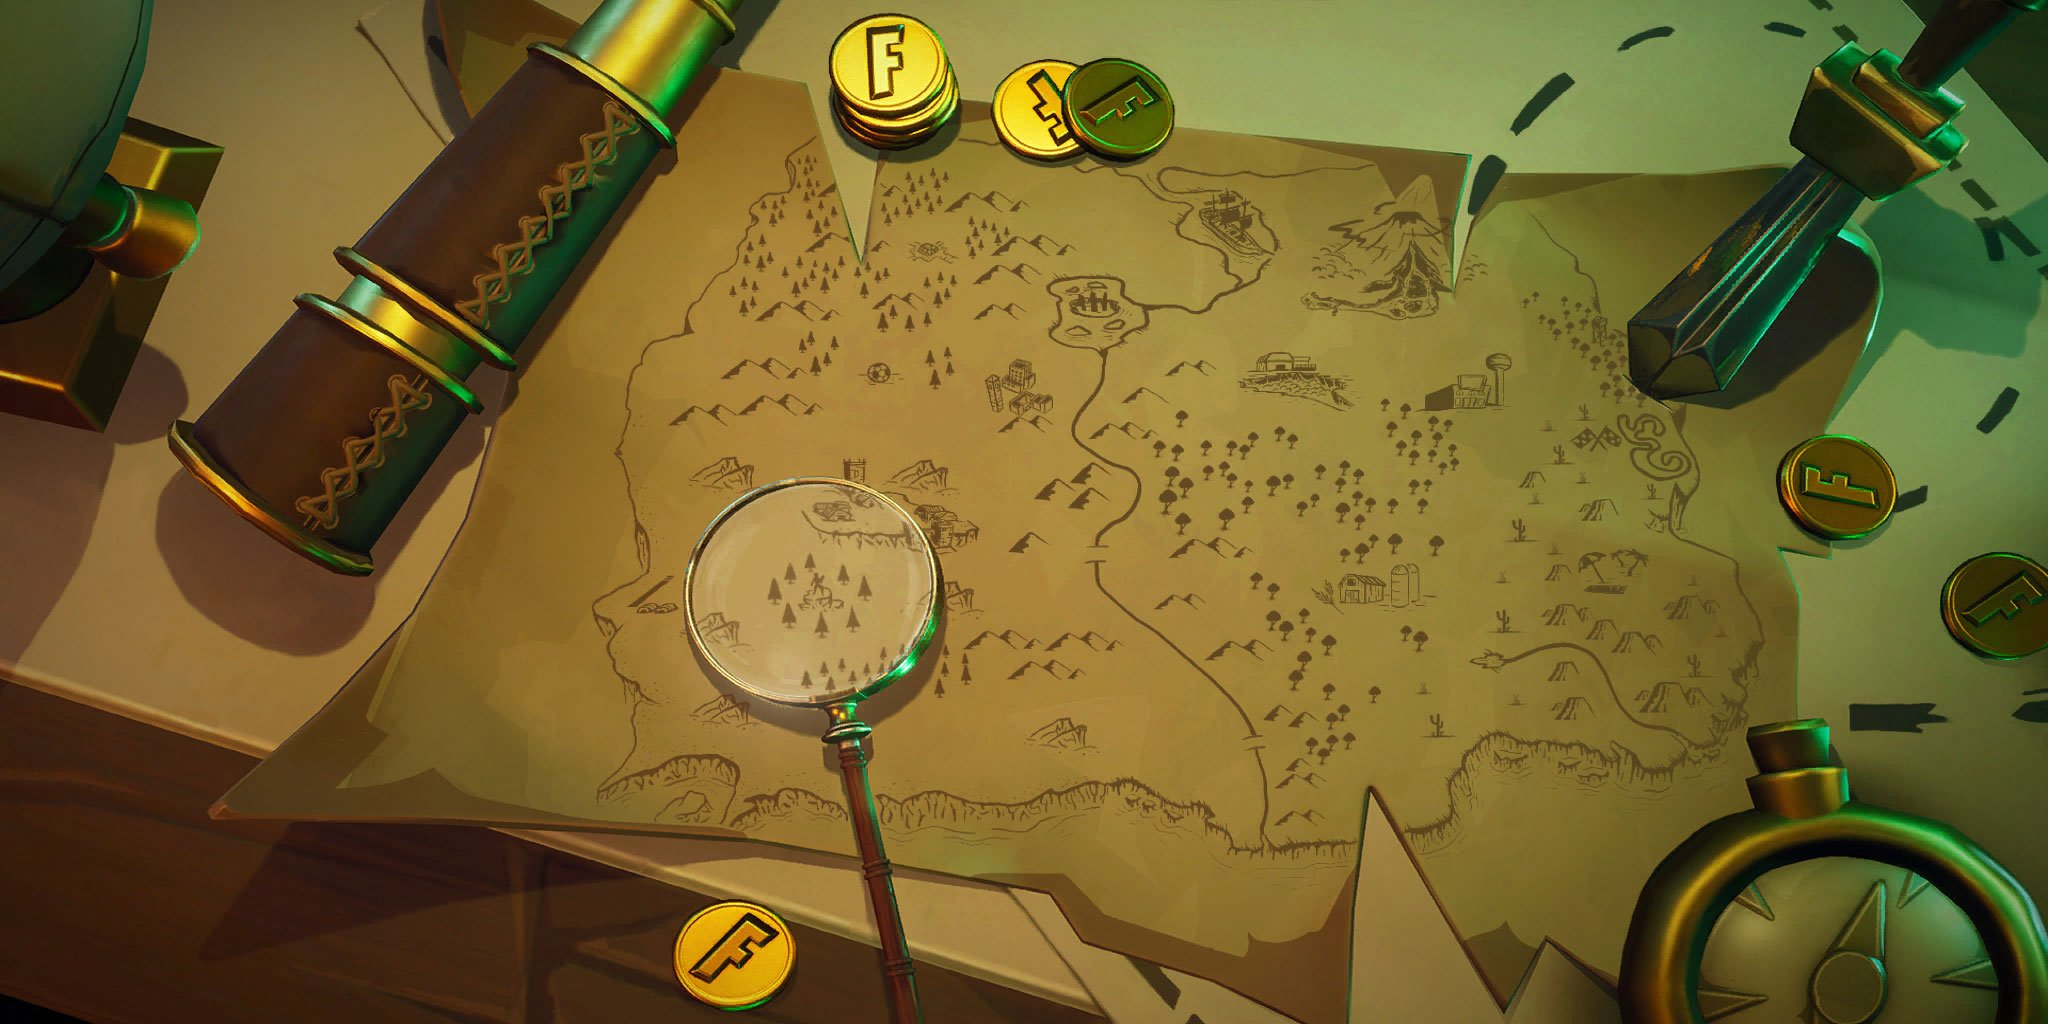 Fortnite Treasure Map Loading Screen - Season 8, Week 6 Challenges